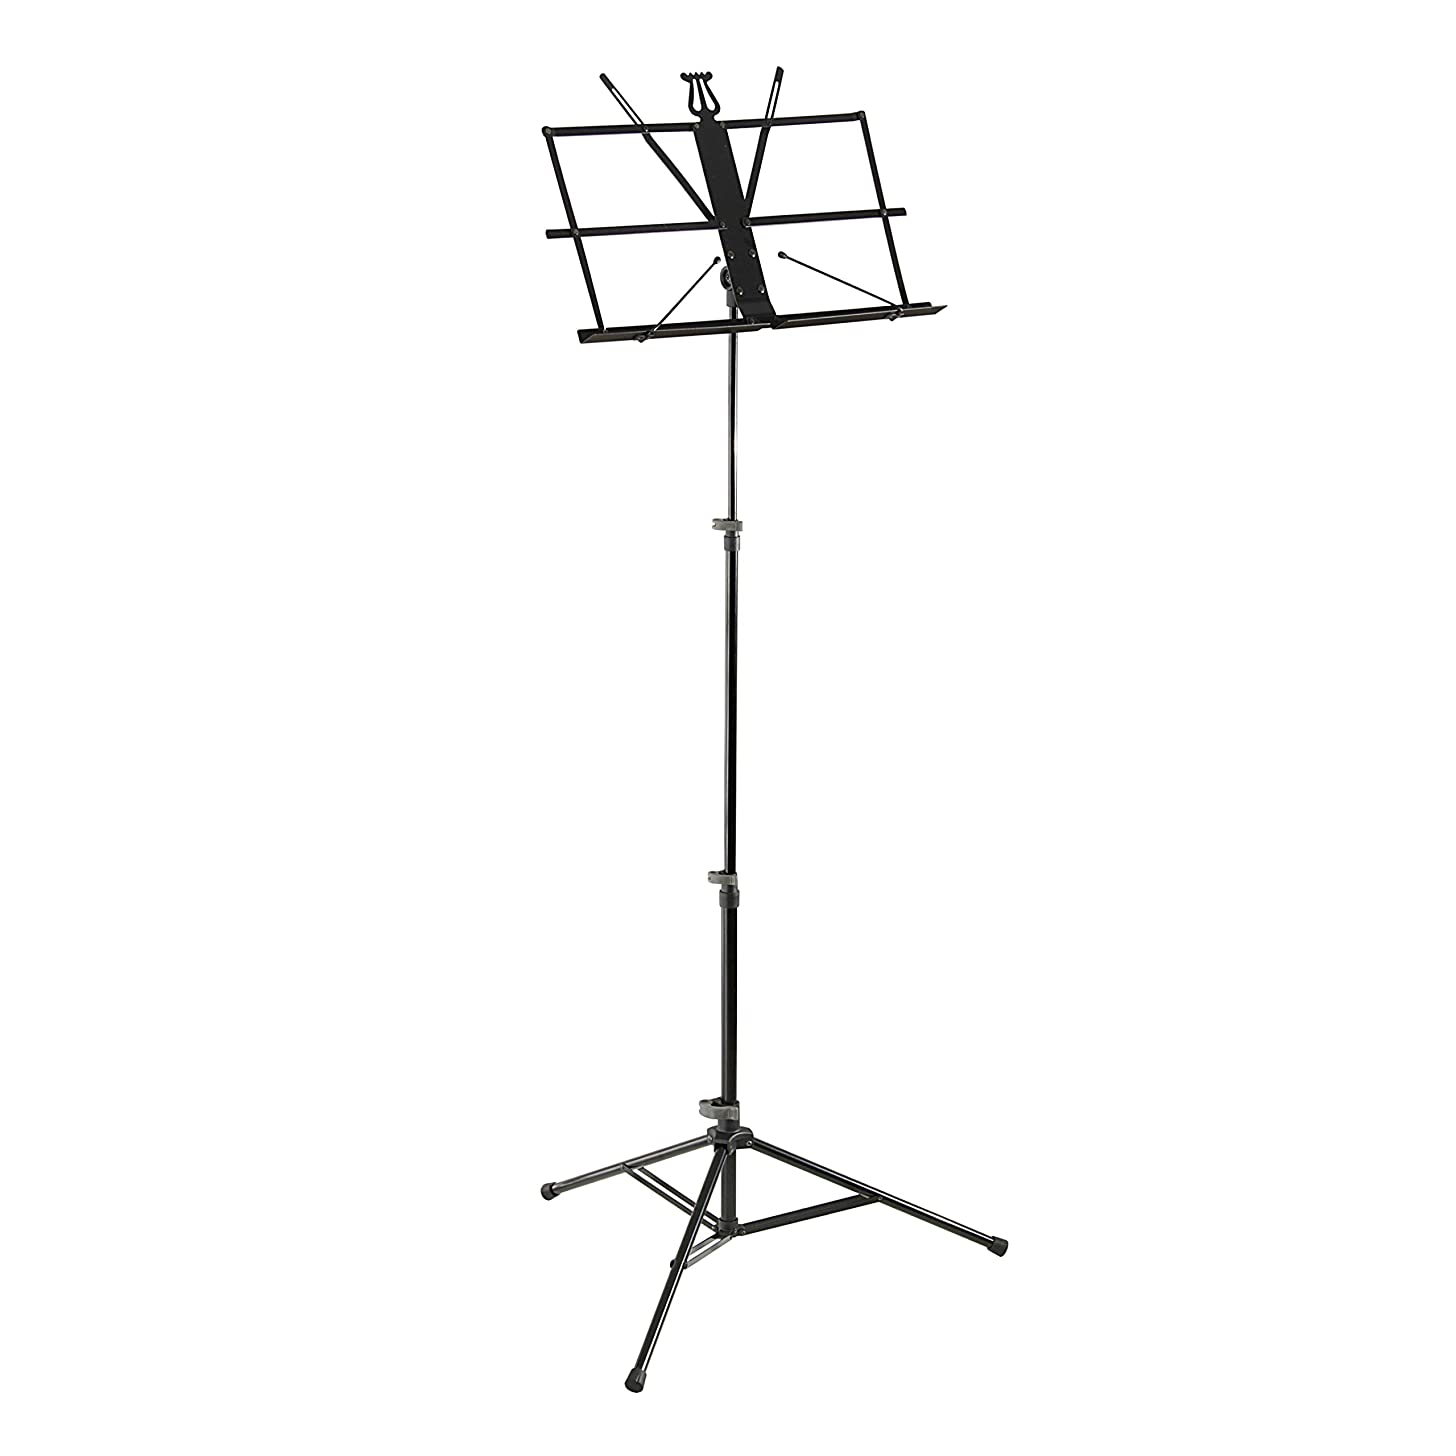 Peak Music Stands SMS-10 Wire Music Stand with Carrying Bag